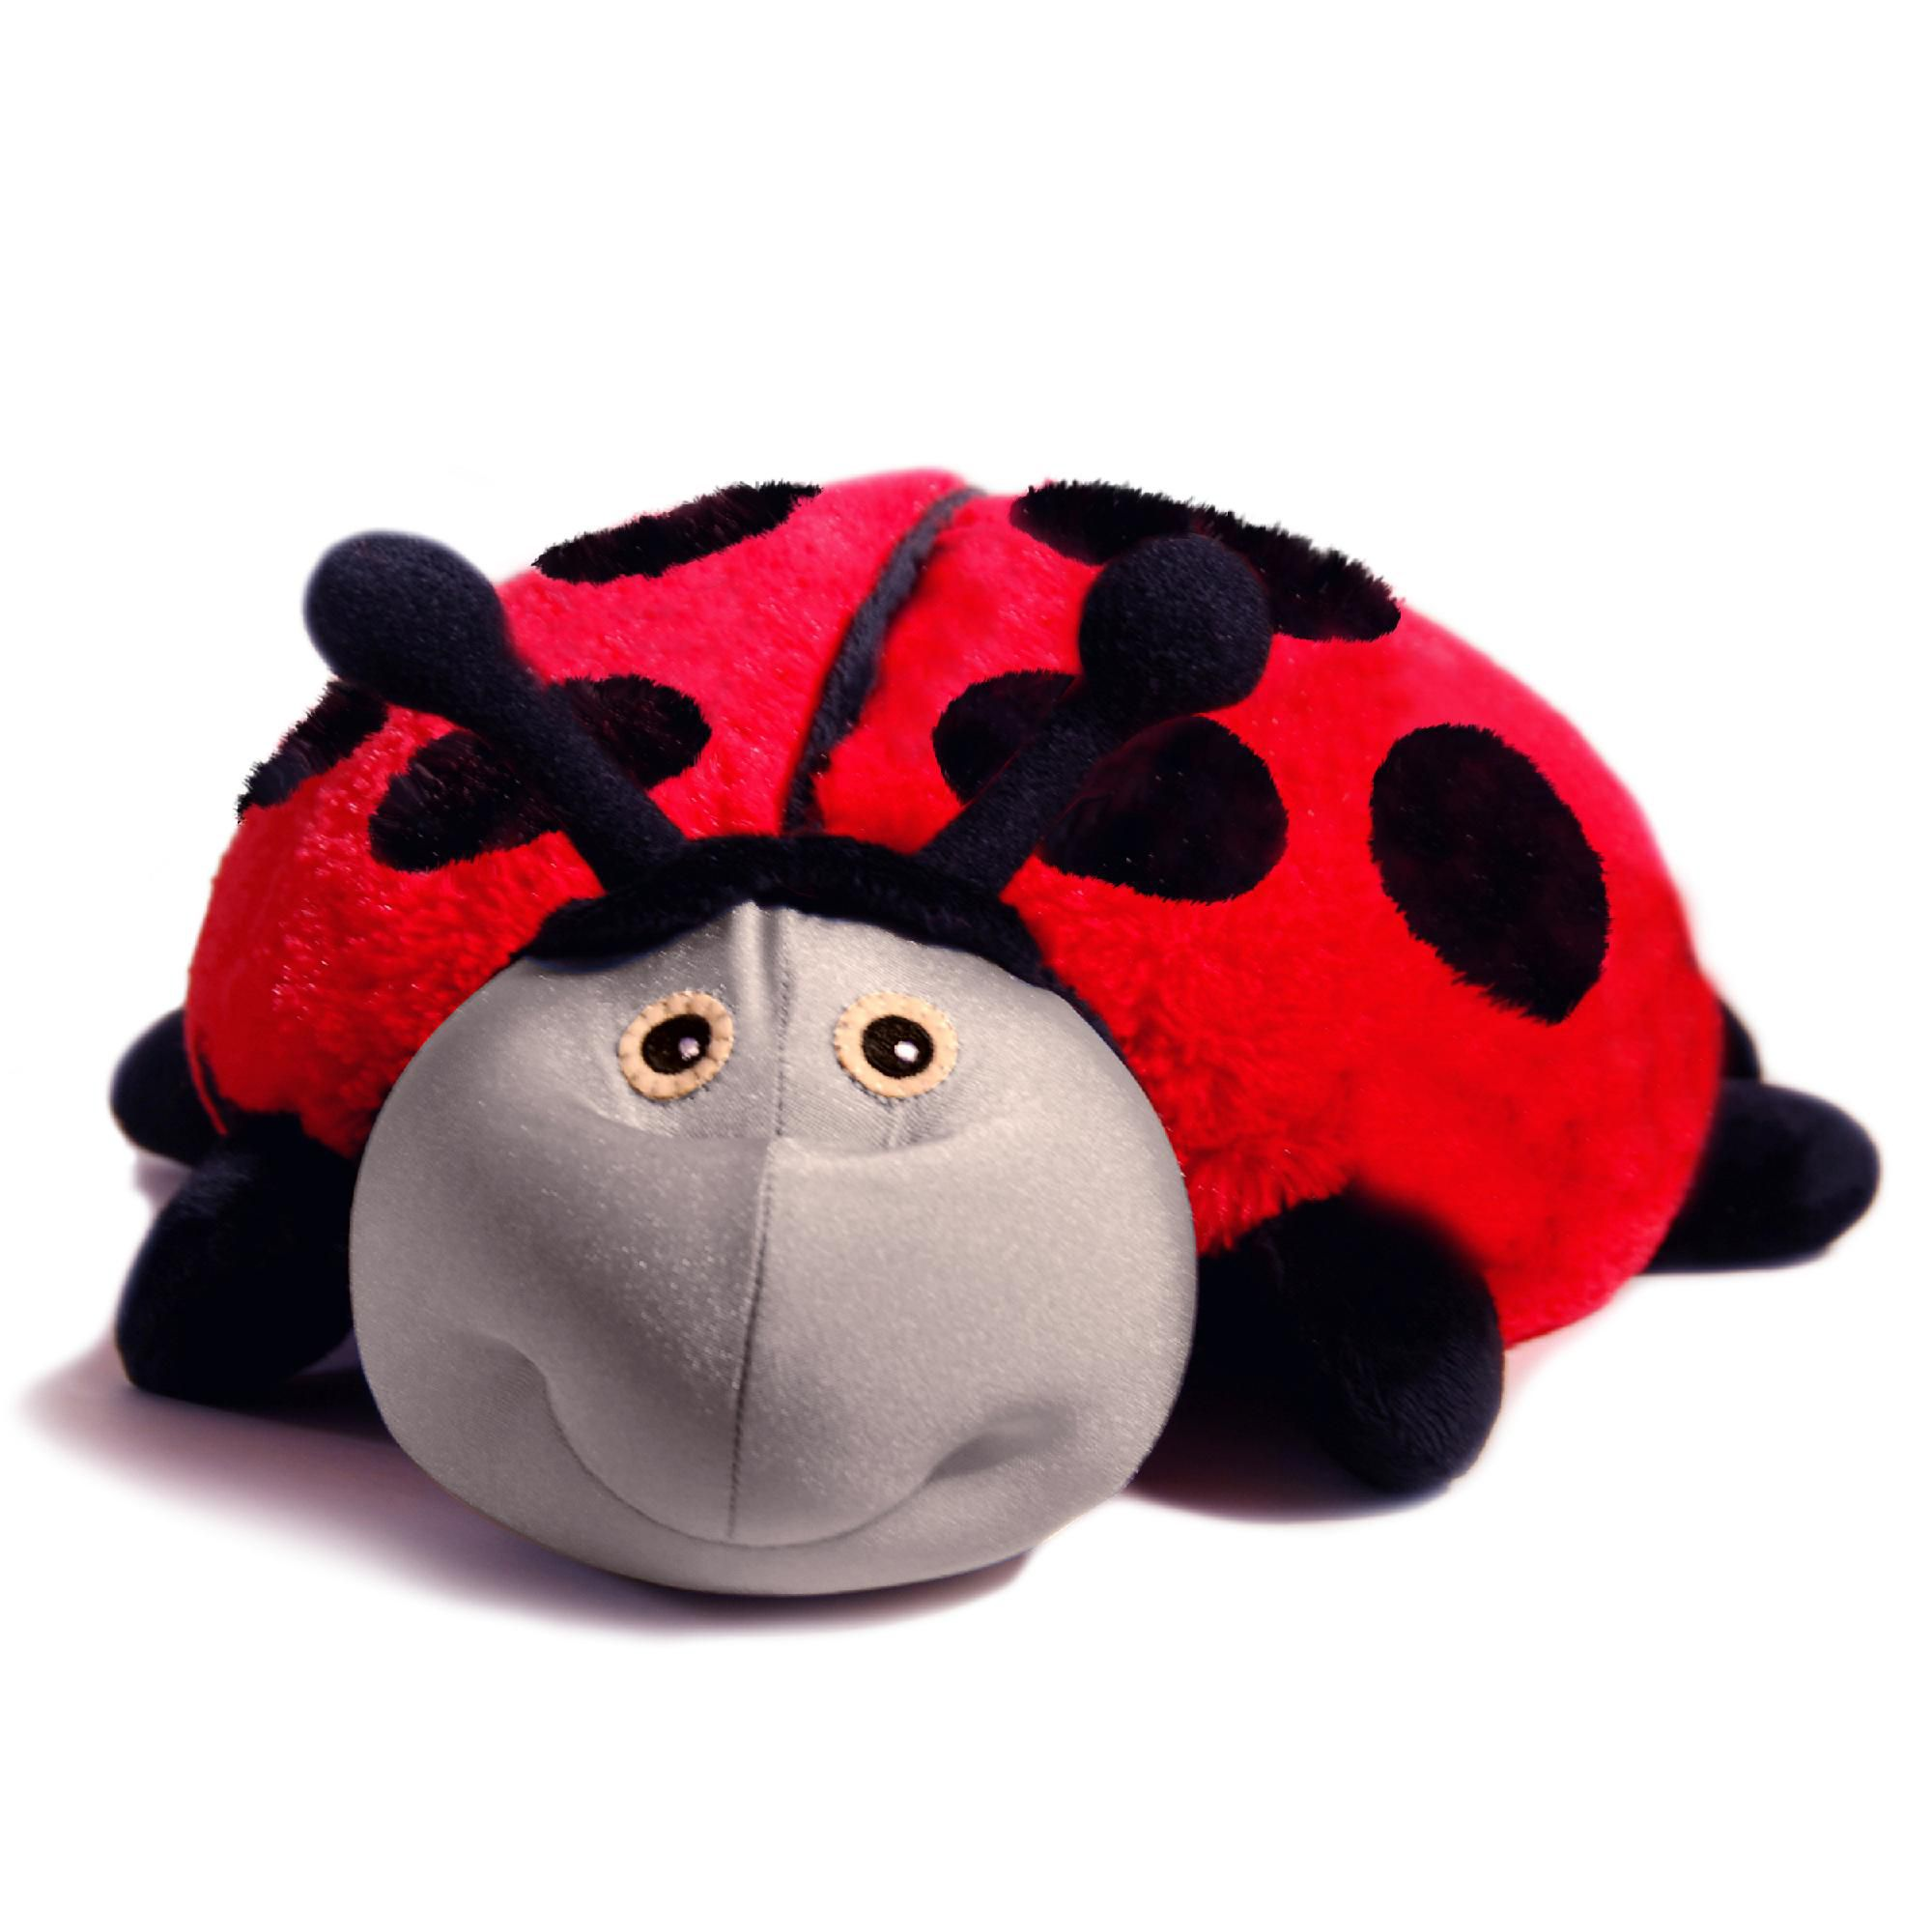 Blanket Pets - Lilly the Ladybug - Red and